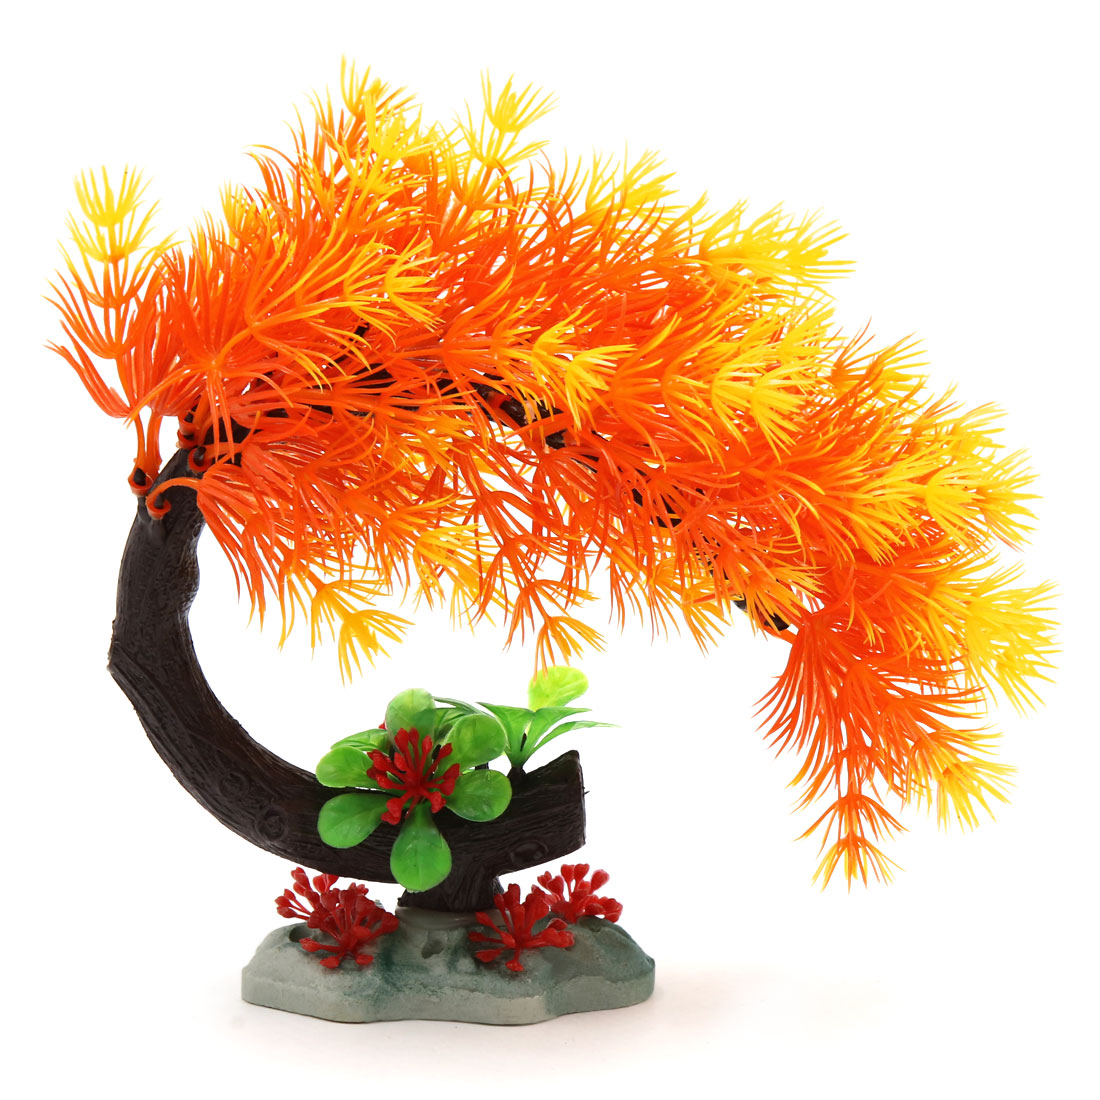 Orange Plastic Needle Leaves Tree Aquarium Fish Betta Tank Landscape Ornament